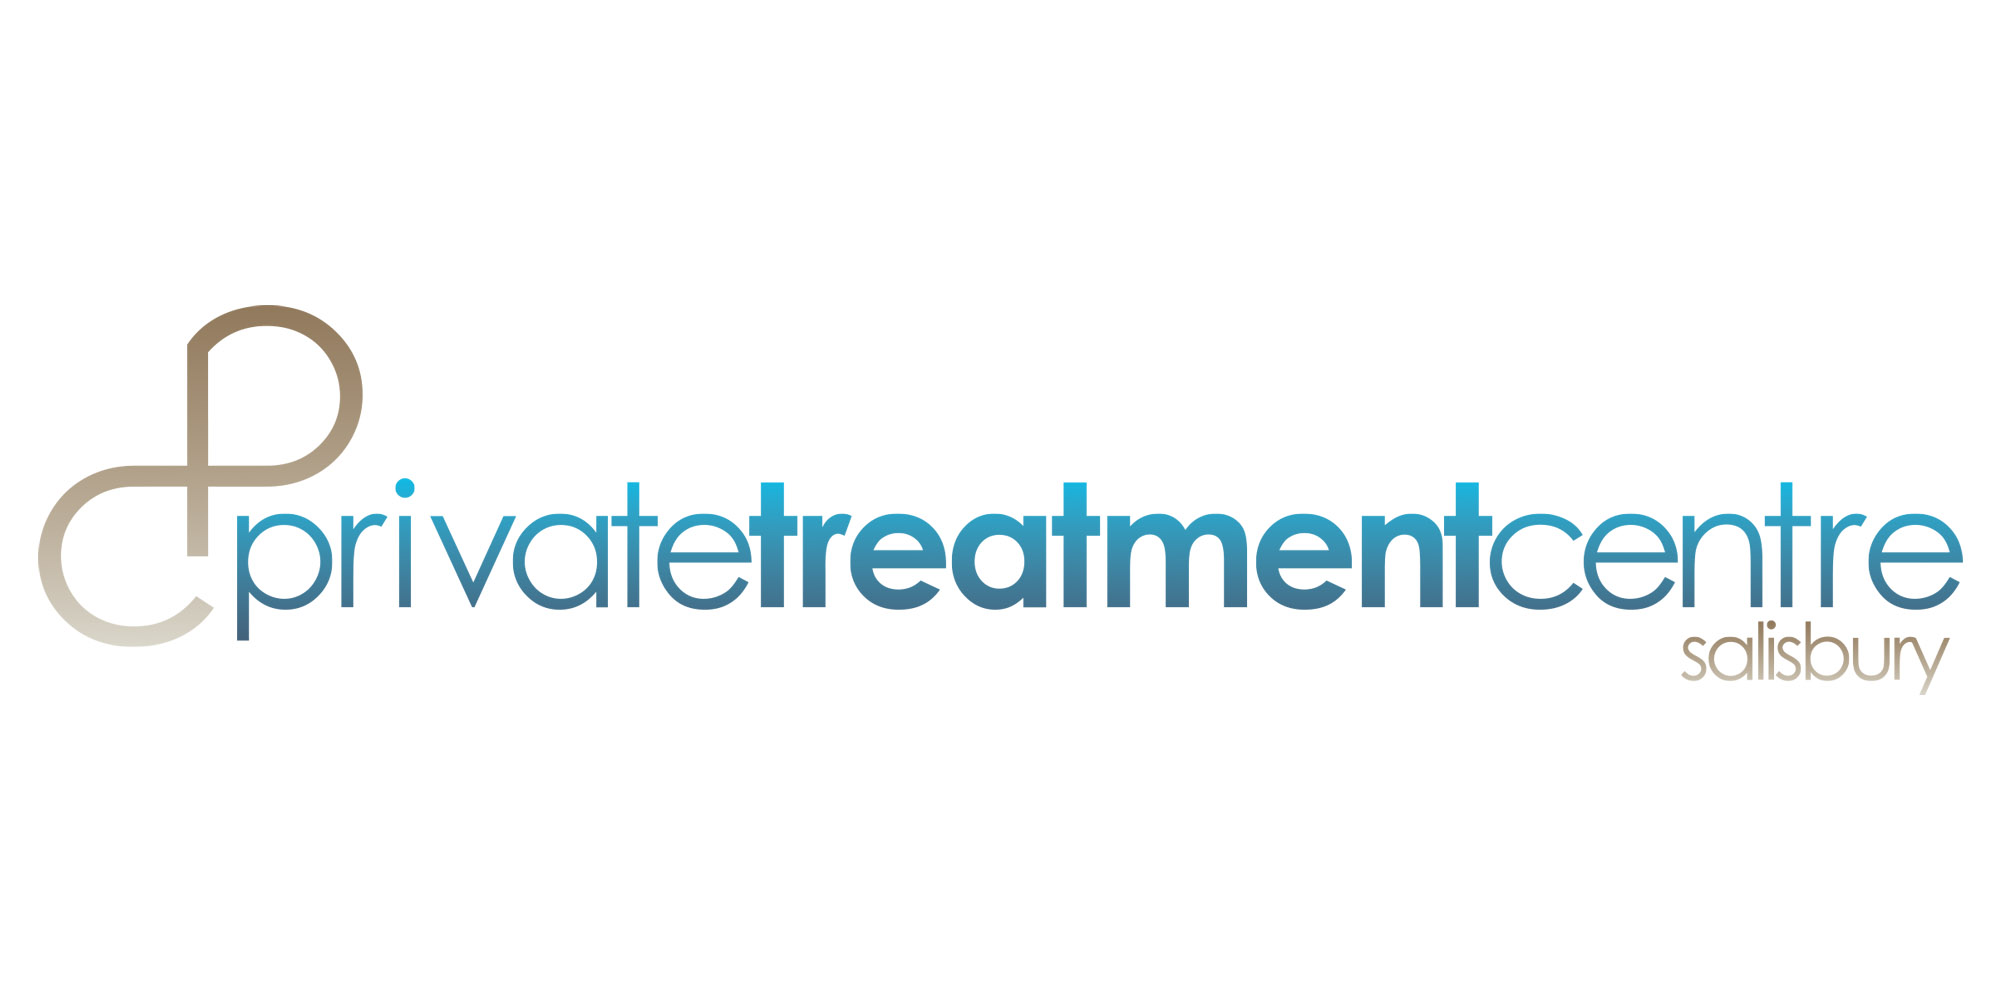 Private Treatment Centre Logo Design